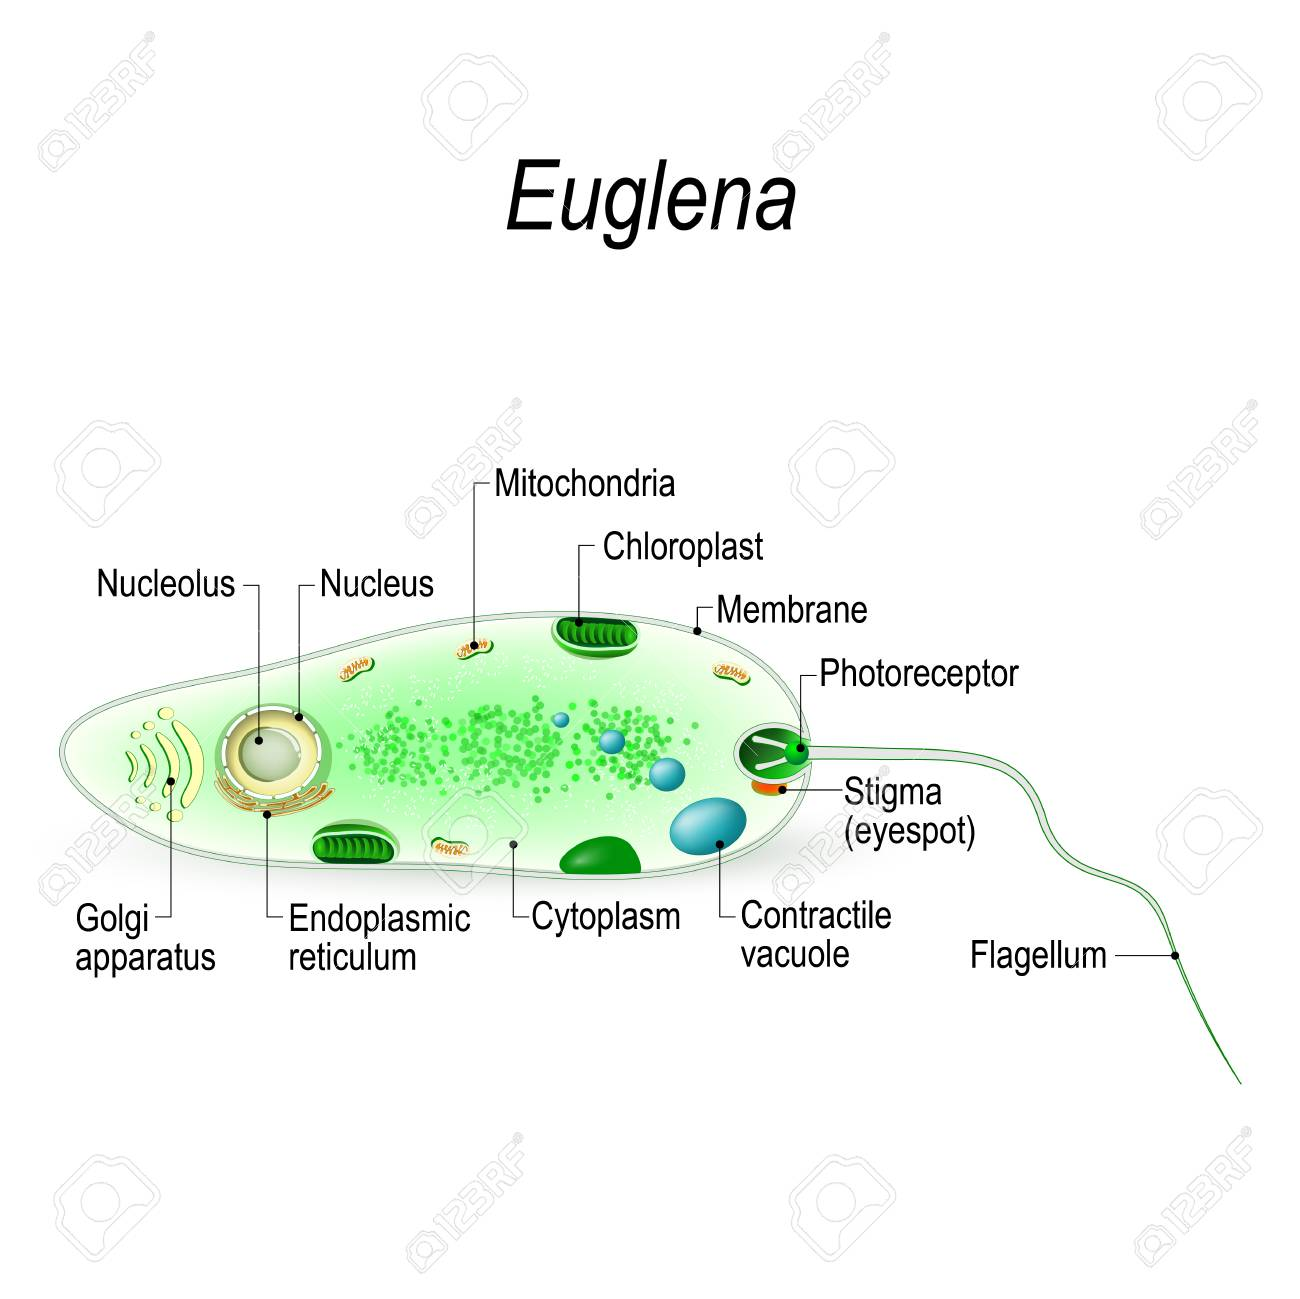 hight resolution of anatomy of a euglena euglena freshwater protozoan it is composed of chlorophyll and has